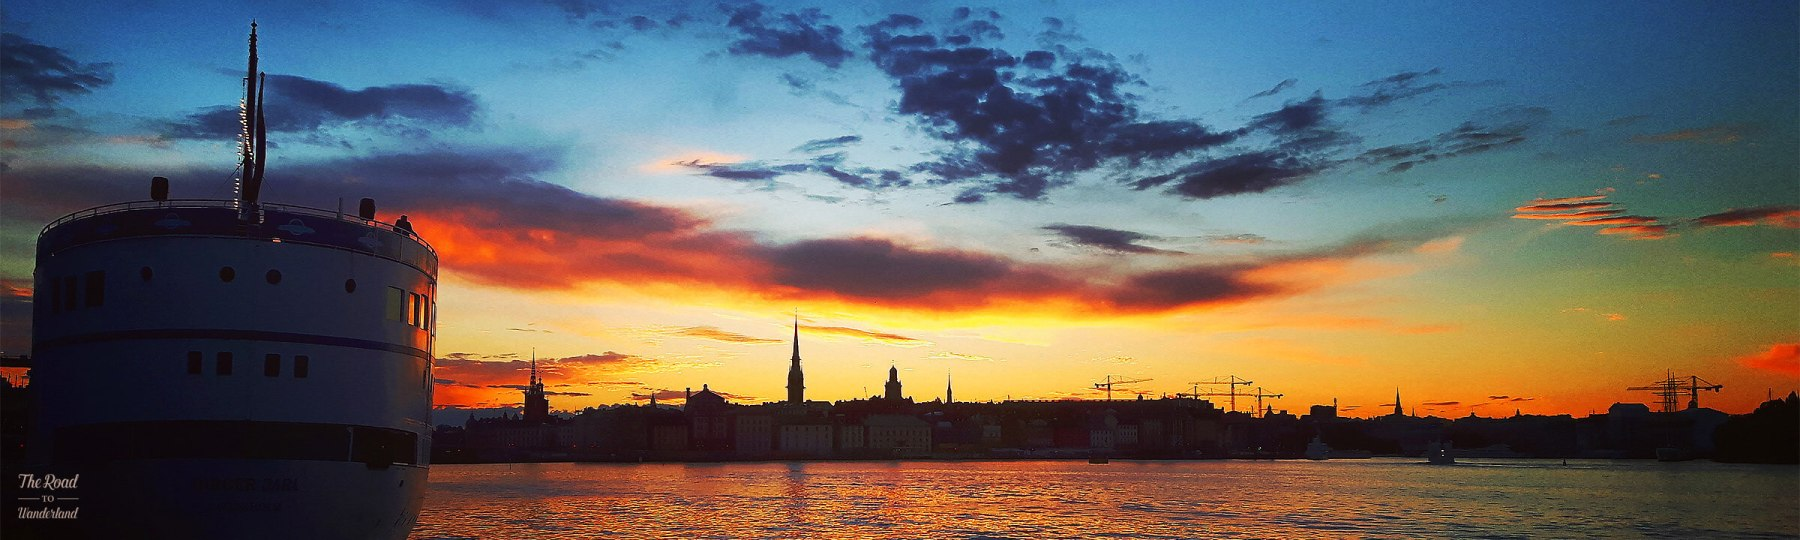 Stockholm at sunset